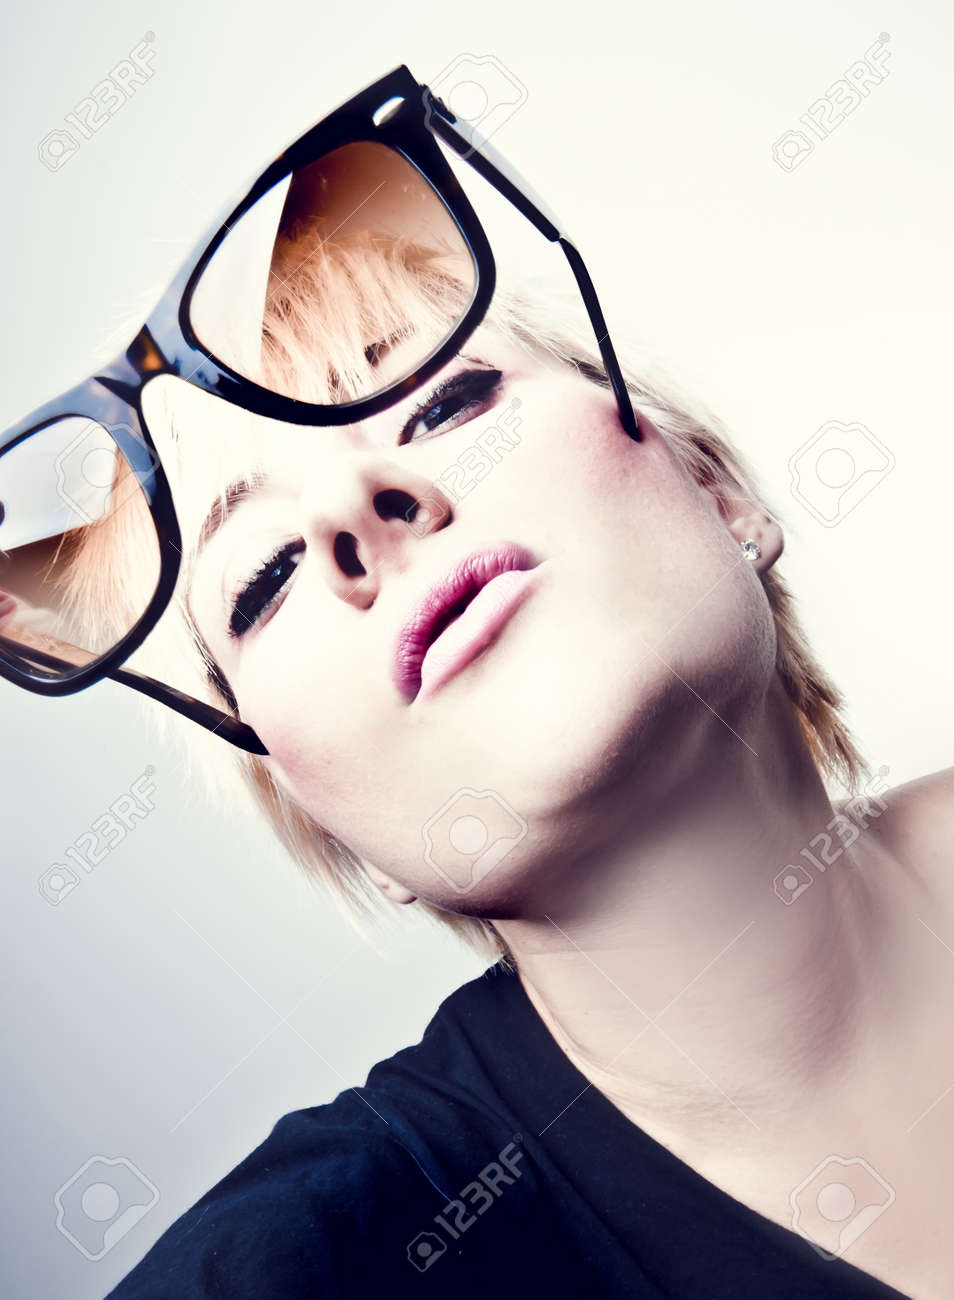 Portrait of a young, blonde girl with short hair and sunglasses Stock Photo - 10162739